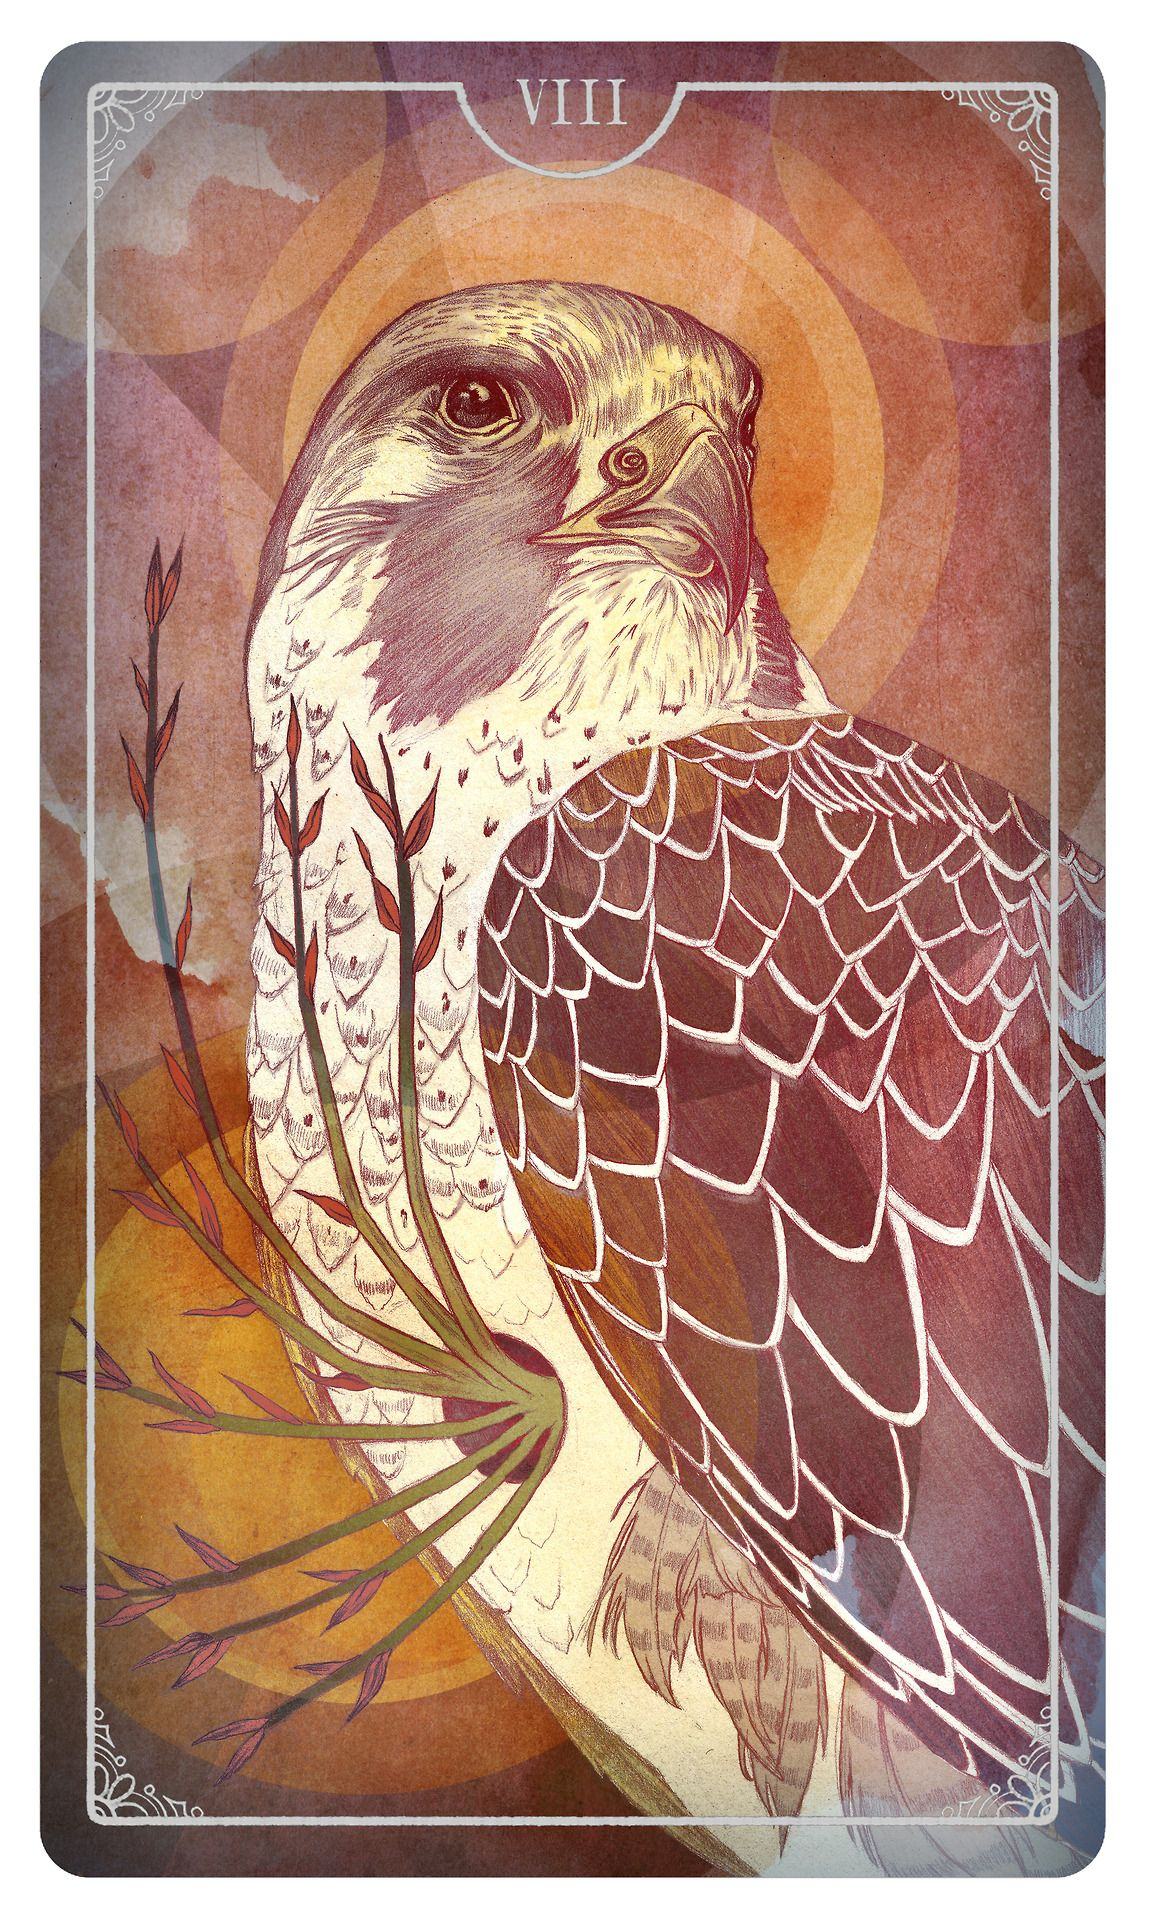 Eight of Wands - Julia Iredale For the upcoming Ostara Tarot Deck - If you love Tarot, visit me at www.WhiteRabbitTarot.com